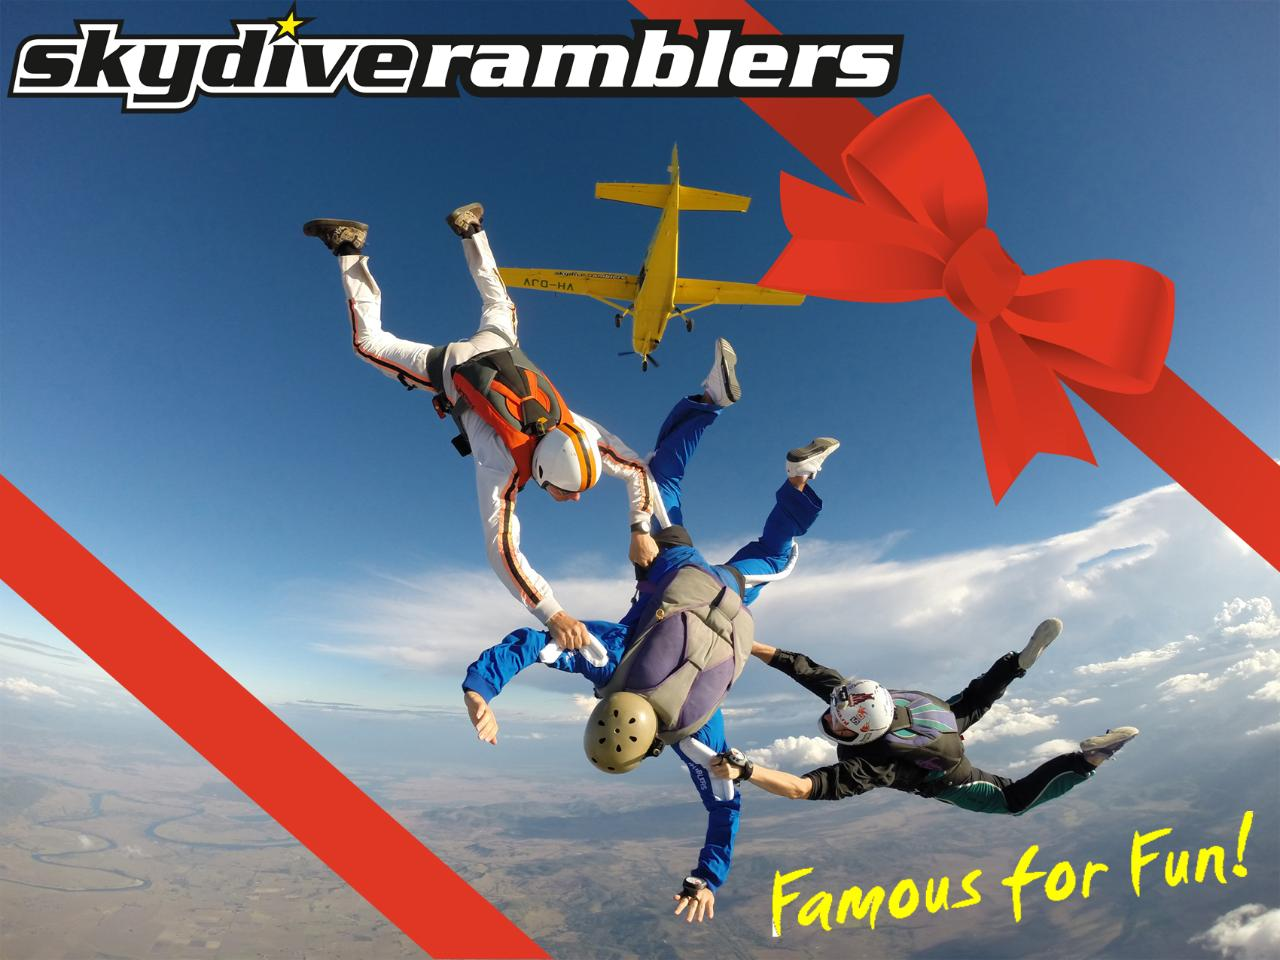 AFF - First Jump Skydiving Course (Stage 1) - Gift Card